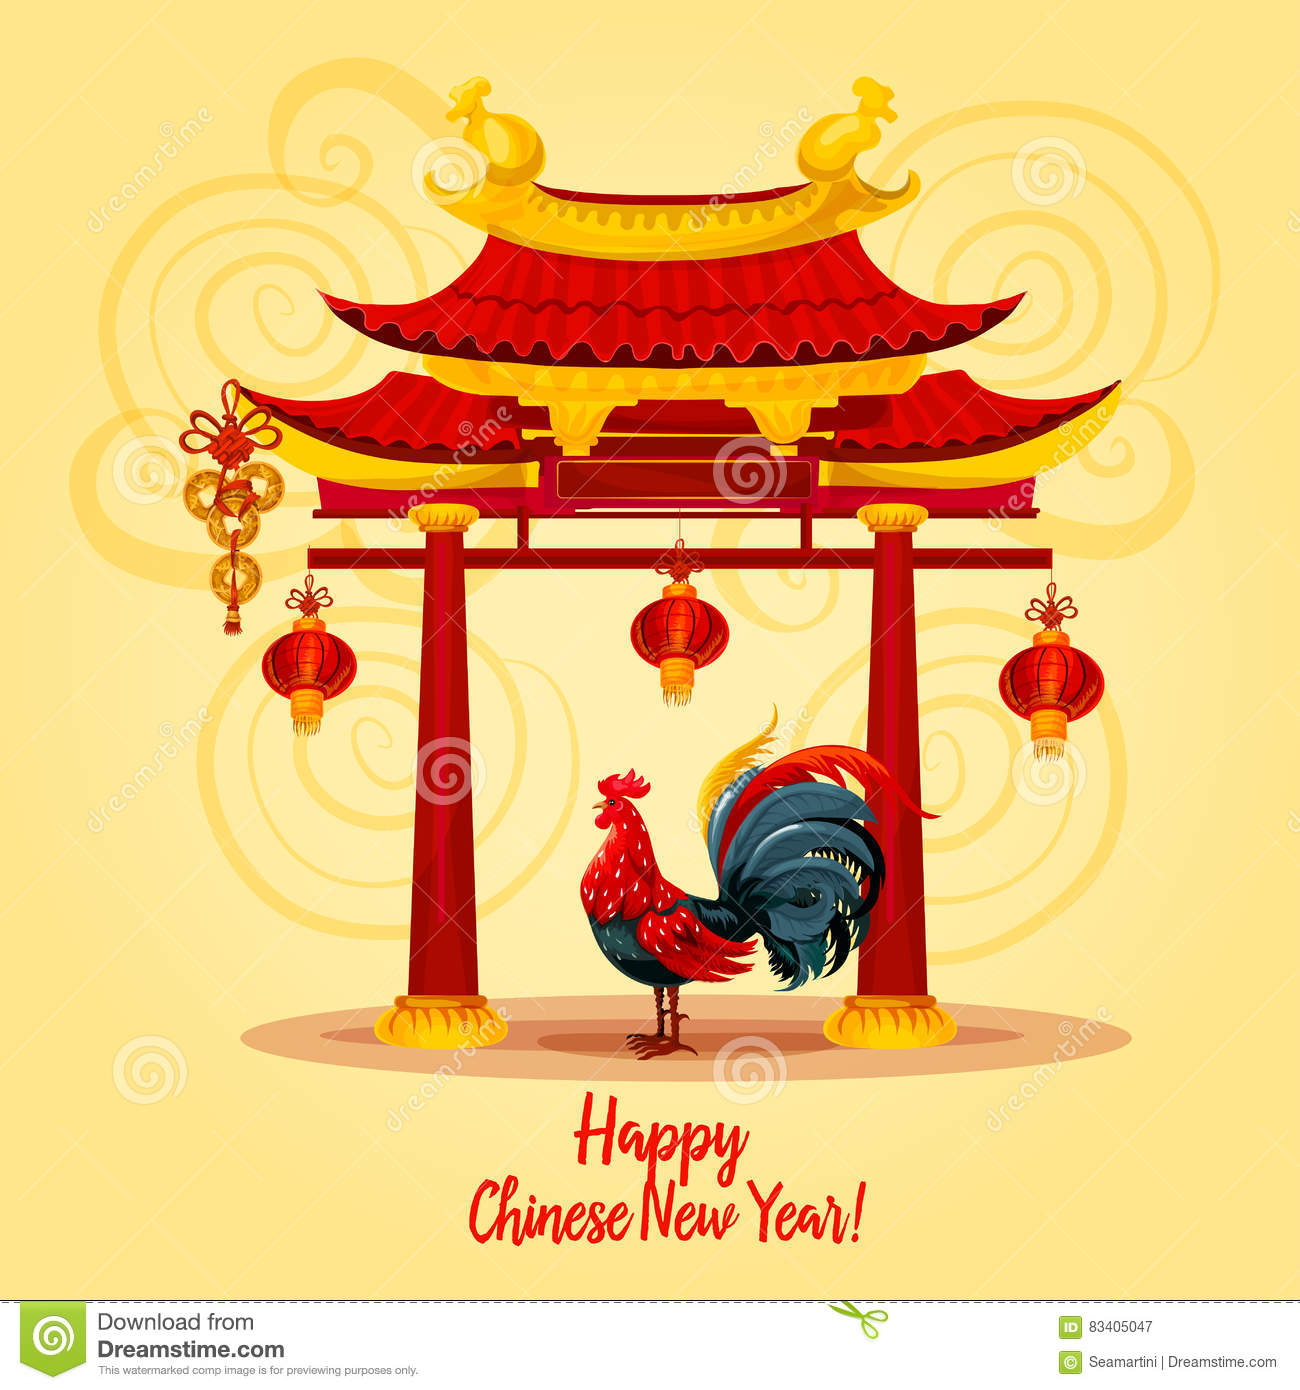 Chinese New Year Rooster Greeting Card Design Stock Vector